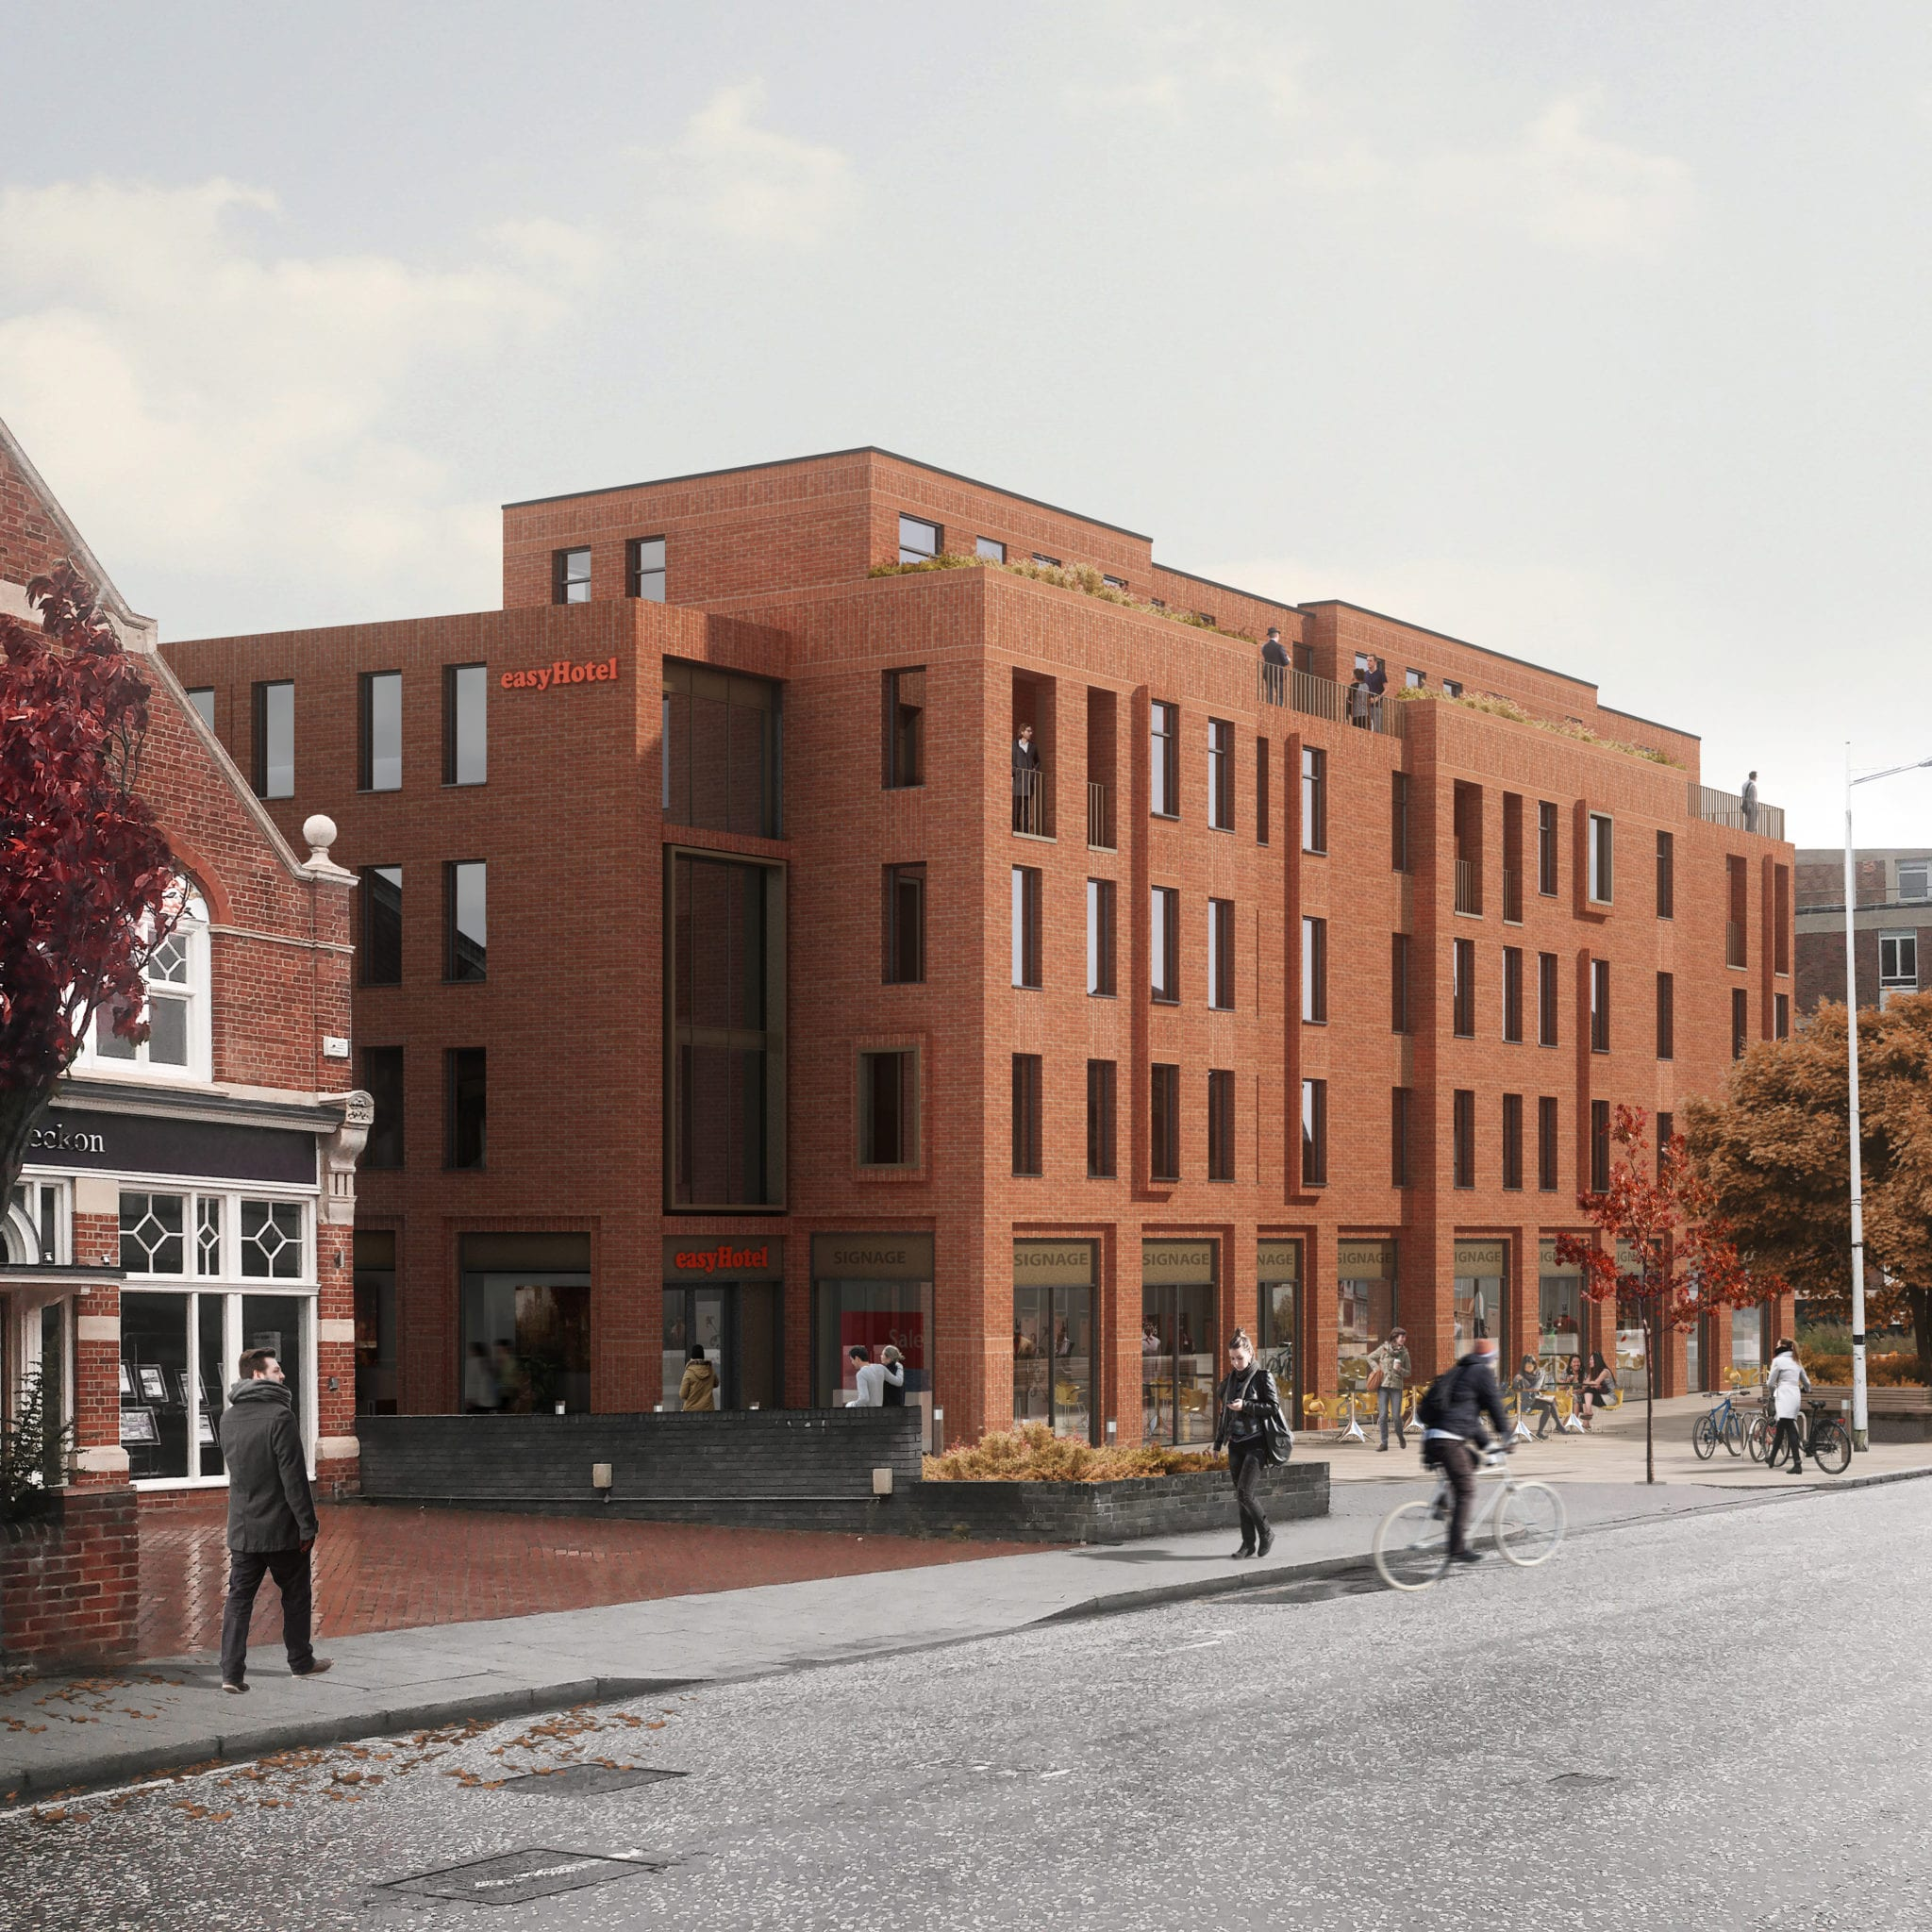 £10M New Hotel and Retail Development gains planning approval in Oxford